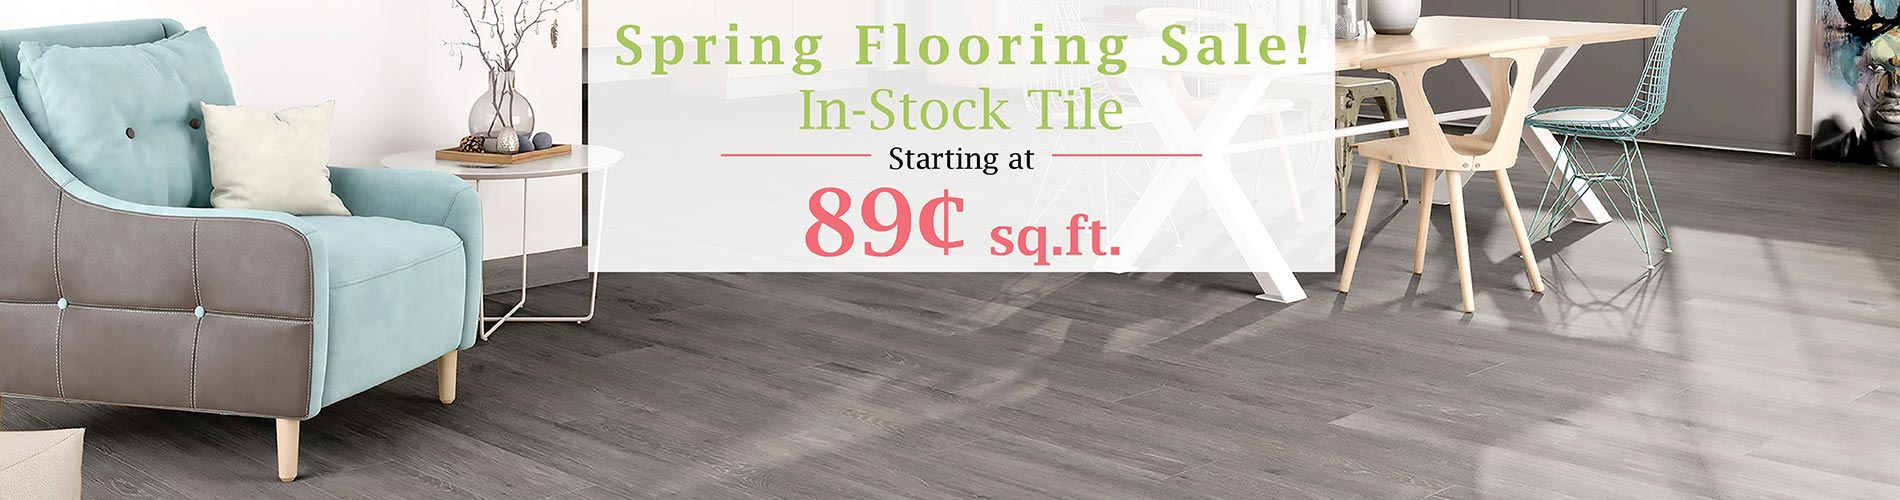 In-stock tile starting at $0.89 sq ft during our Spring Flooring Sale